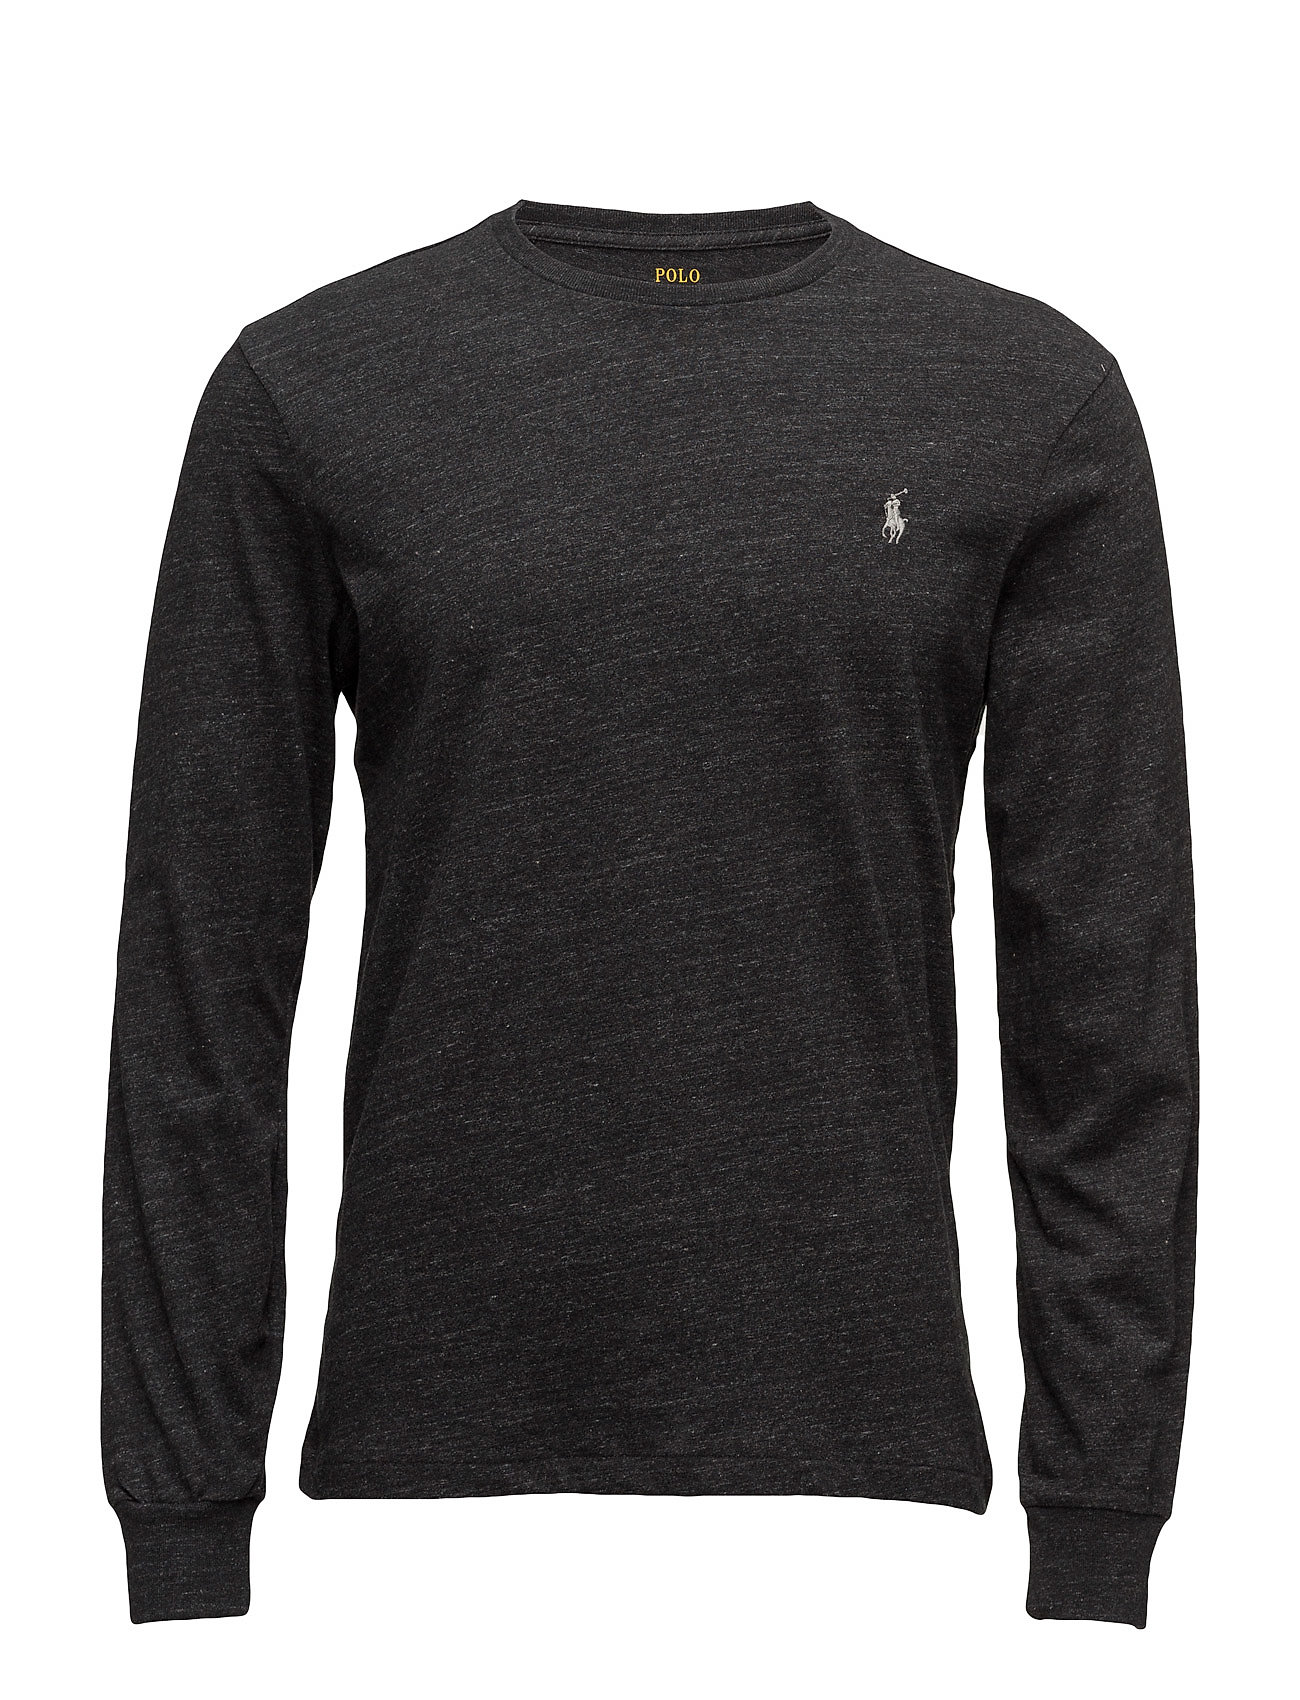 Polo Ralph Lauren LSCNCMSLM5-LONG SLEEVE-T-SHIRT - BLACK MARL HEATHE